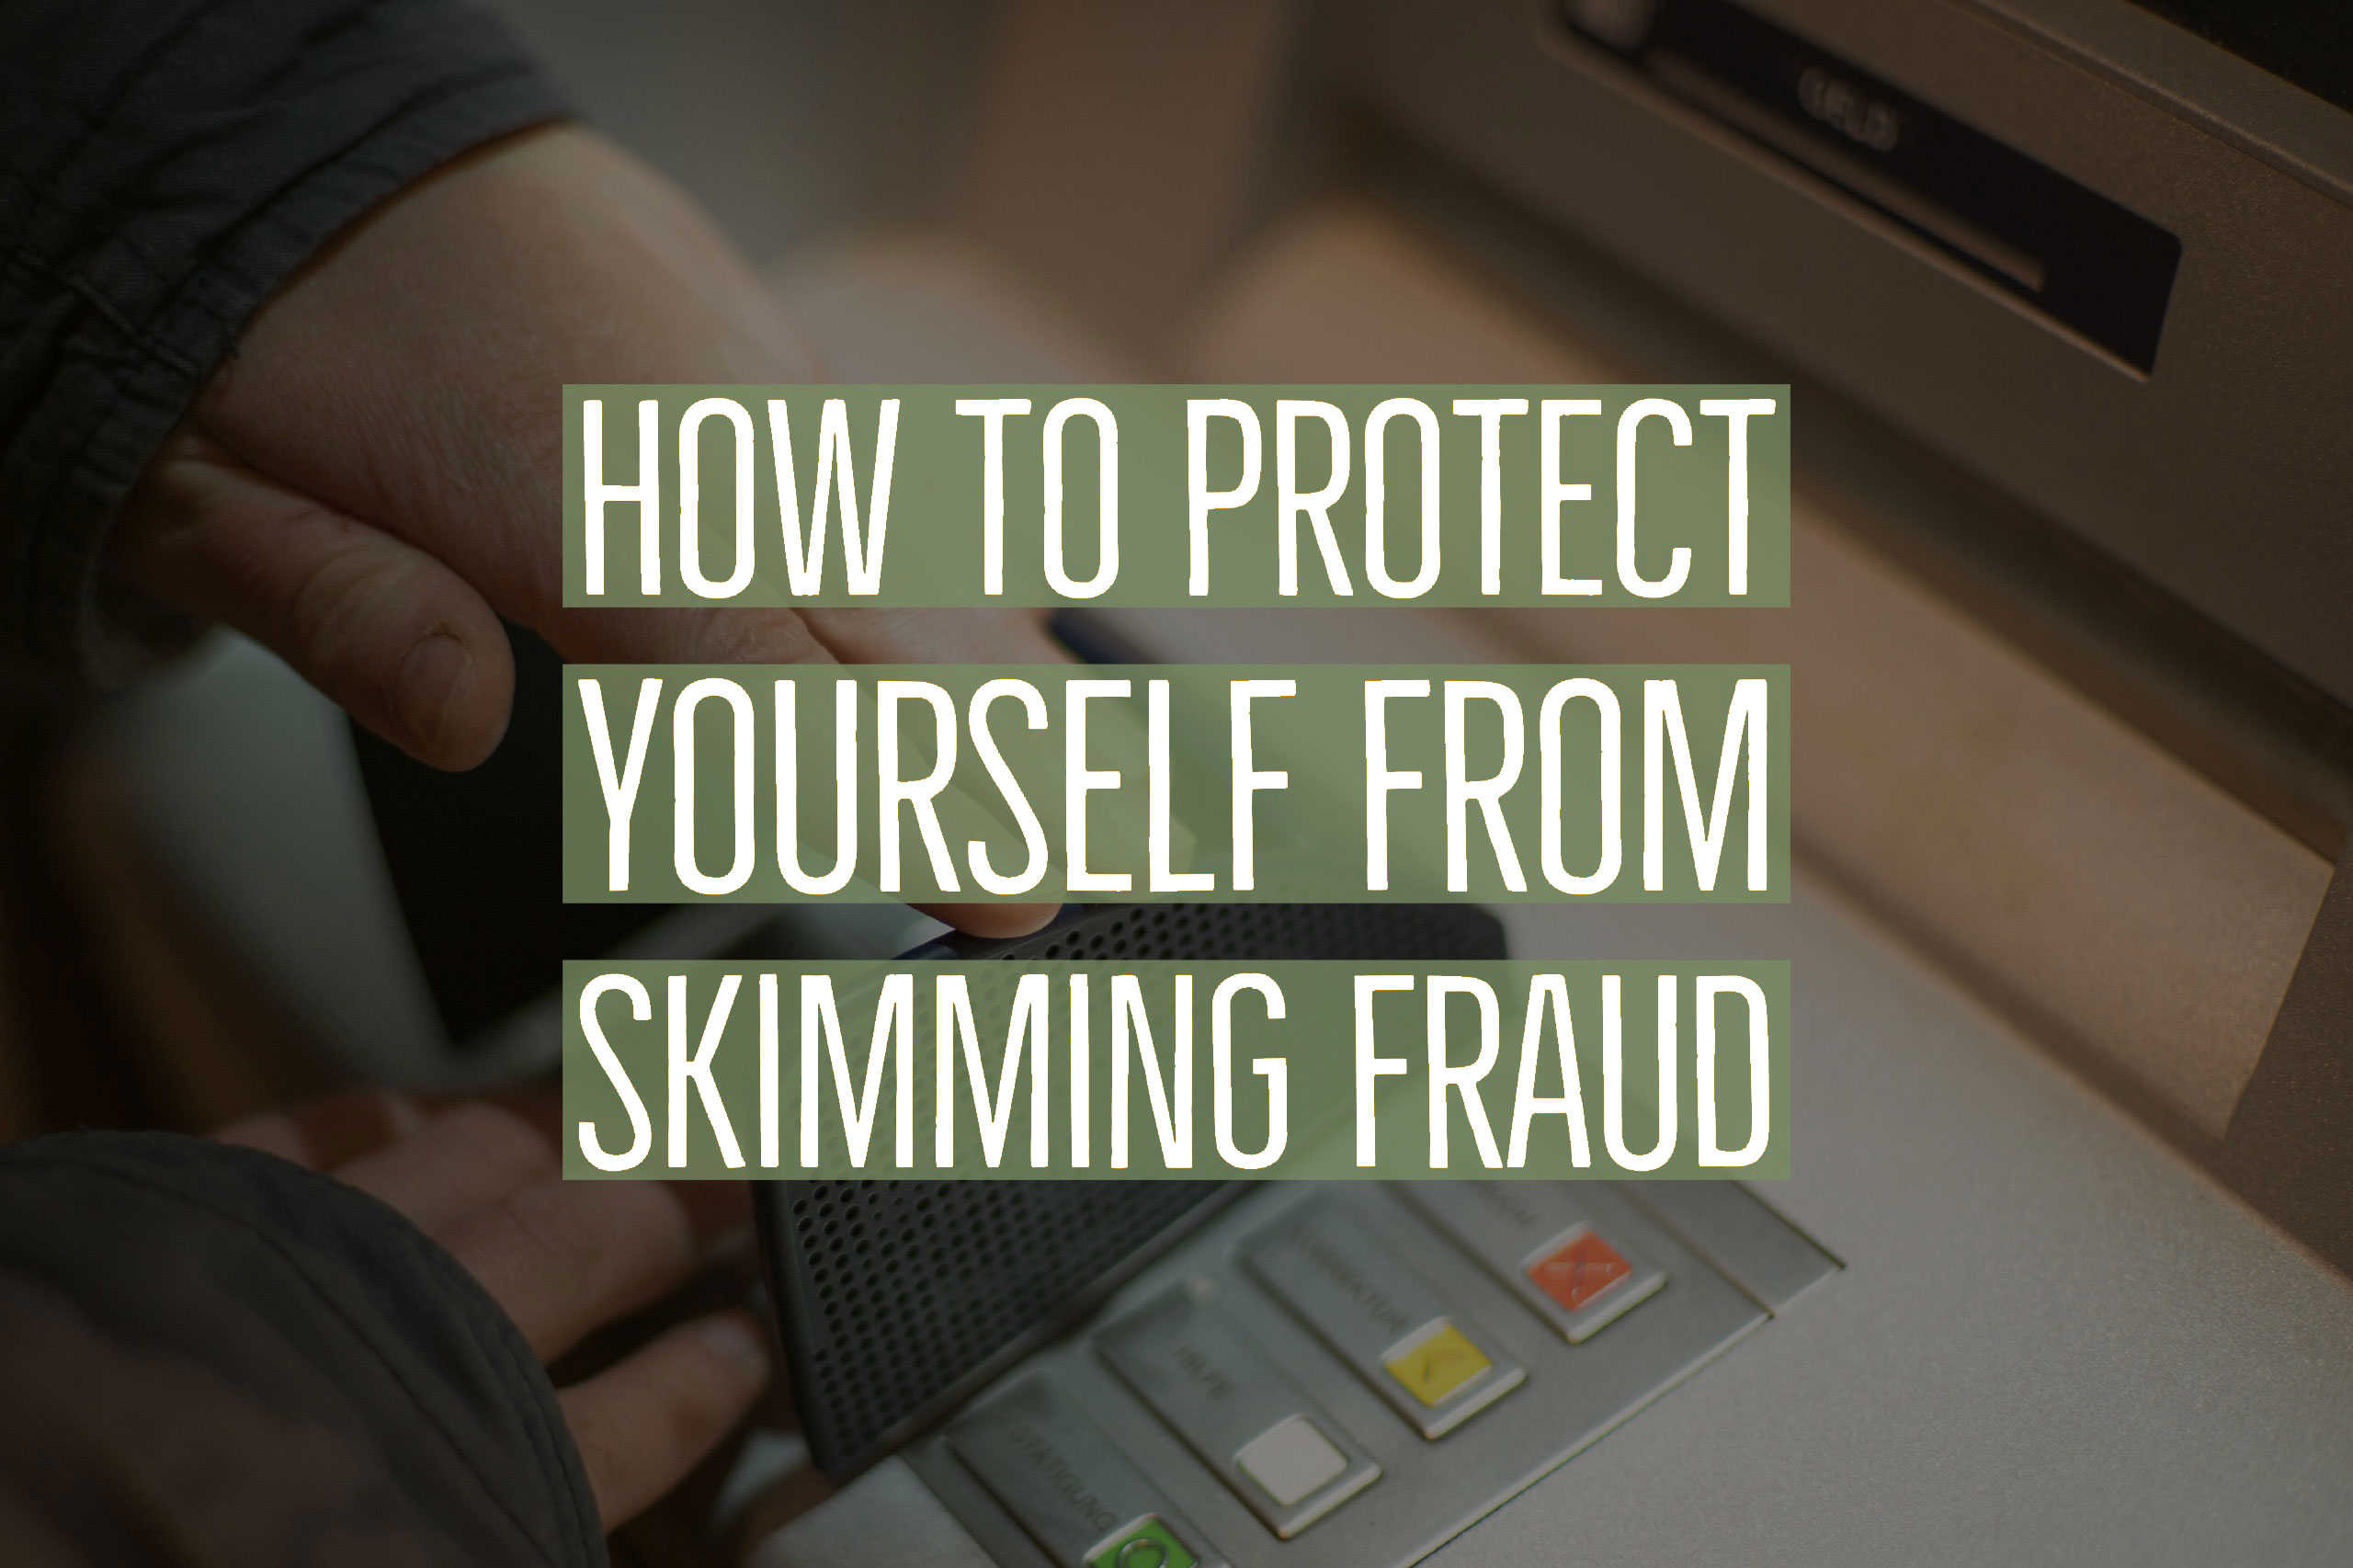 HowtoProtectYourselffromSkimmingFraud